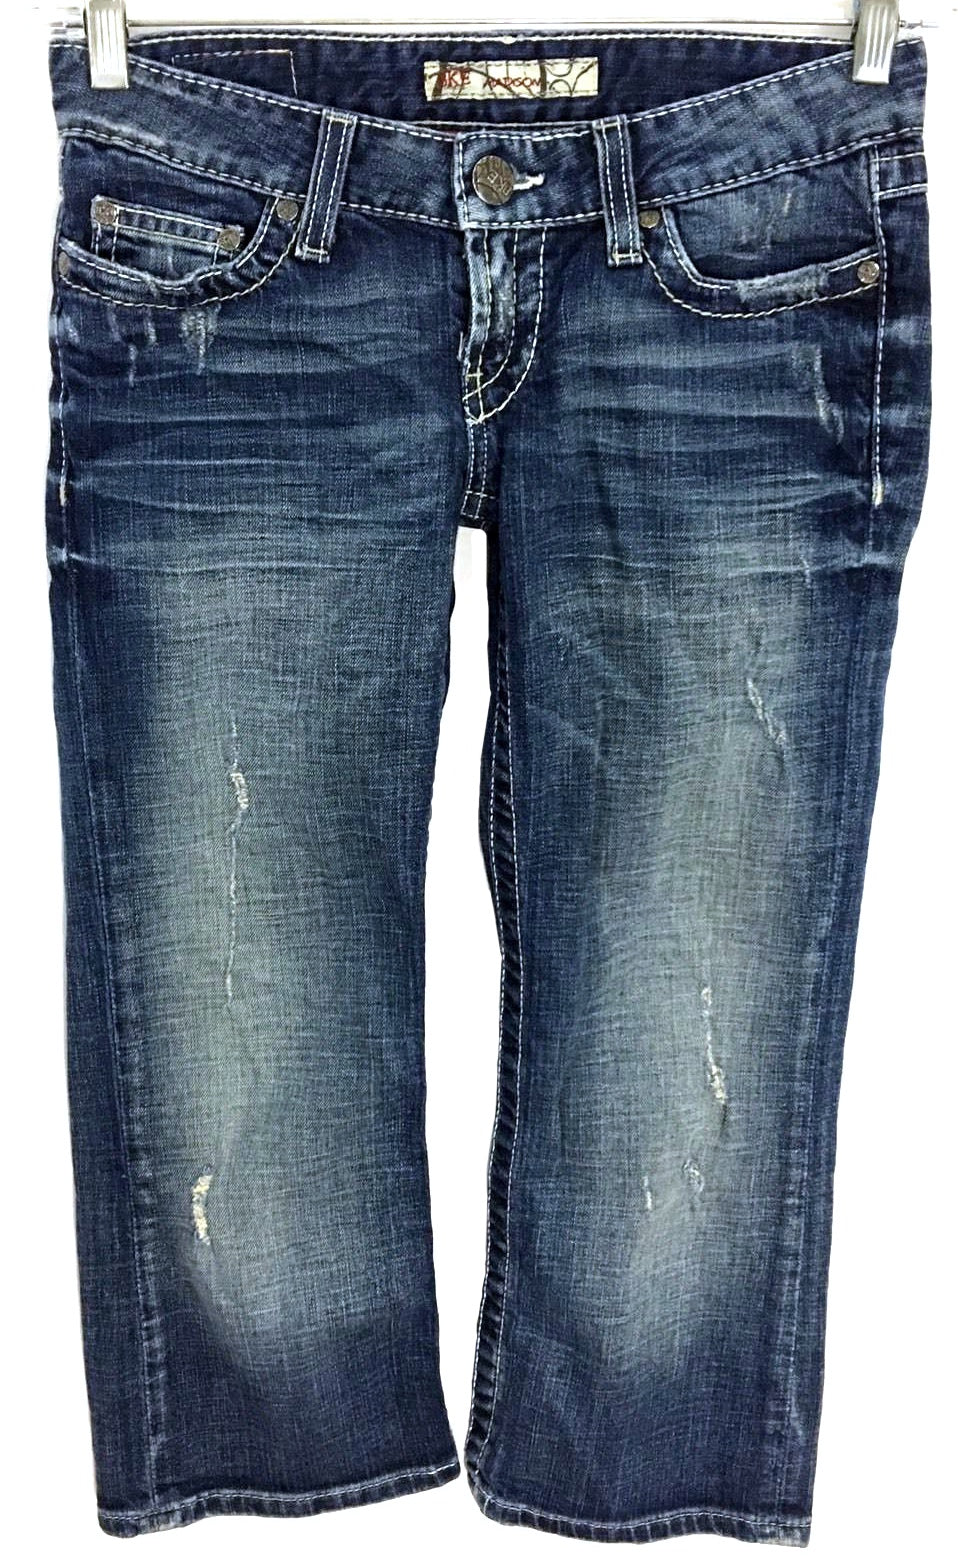 BKE Buckle Madison Capri Cotton Stretch Distressed Jeans Women 25 Actual 25 x 22.5 - Preowned - FunkyCrap Boutique